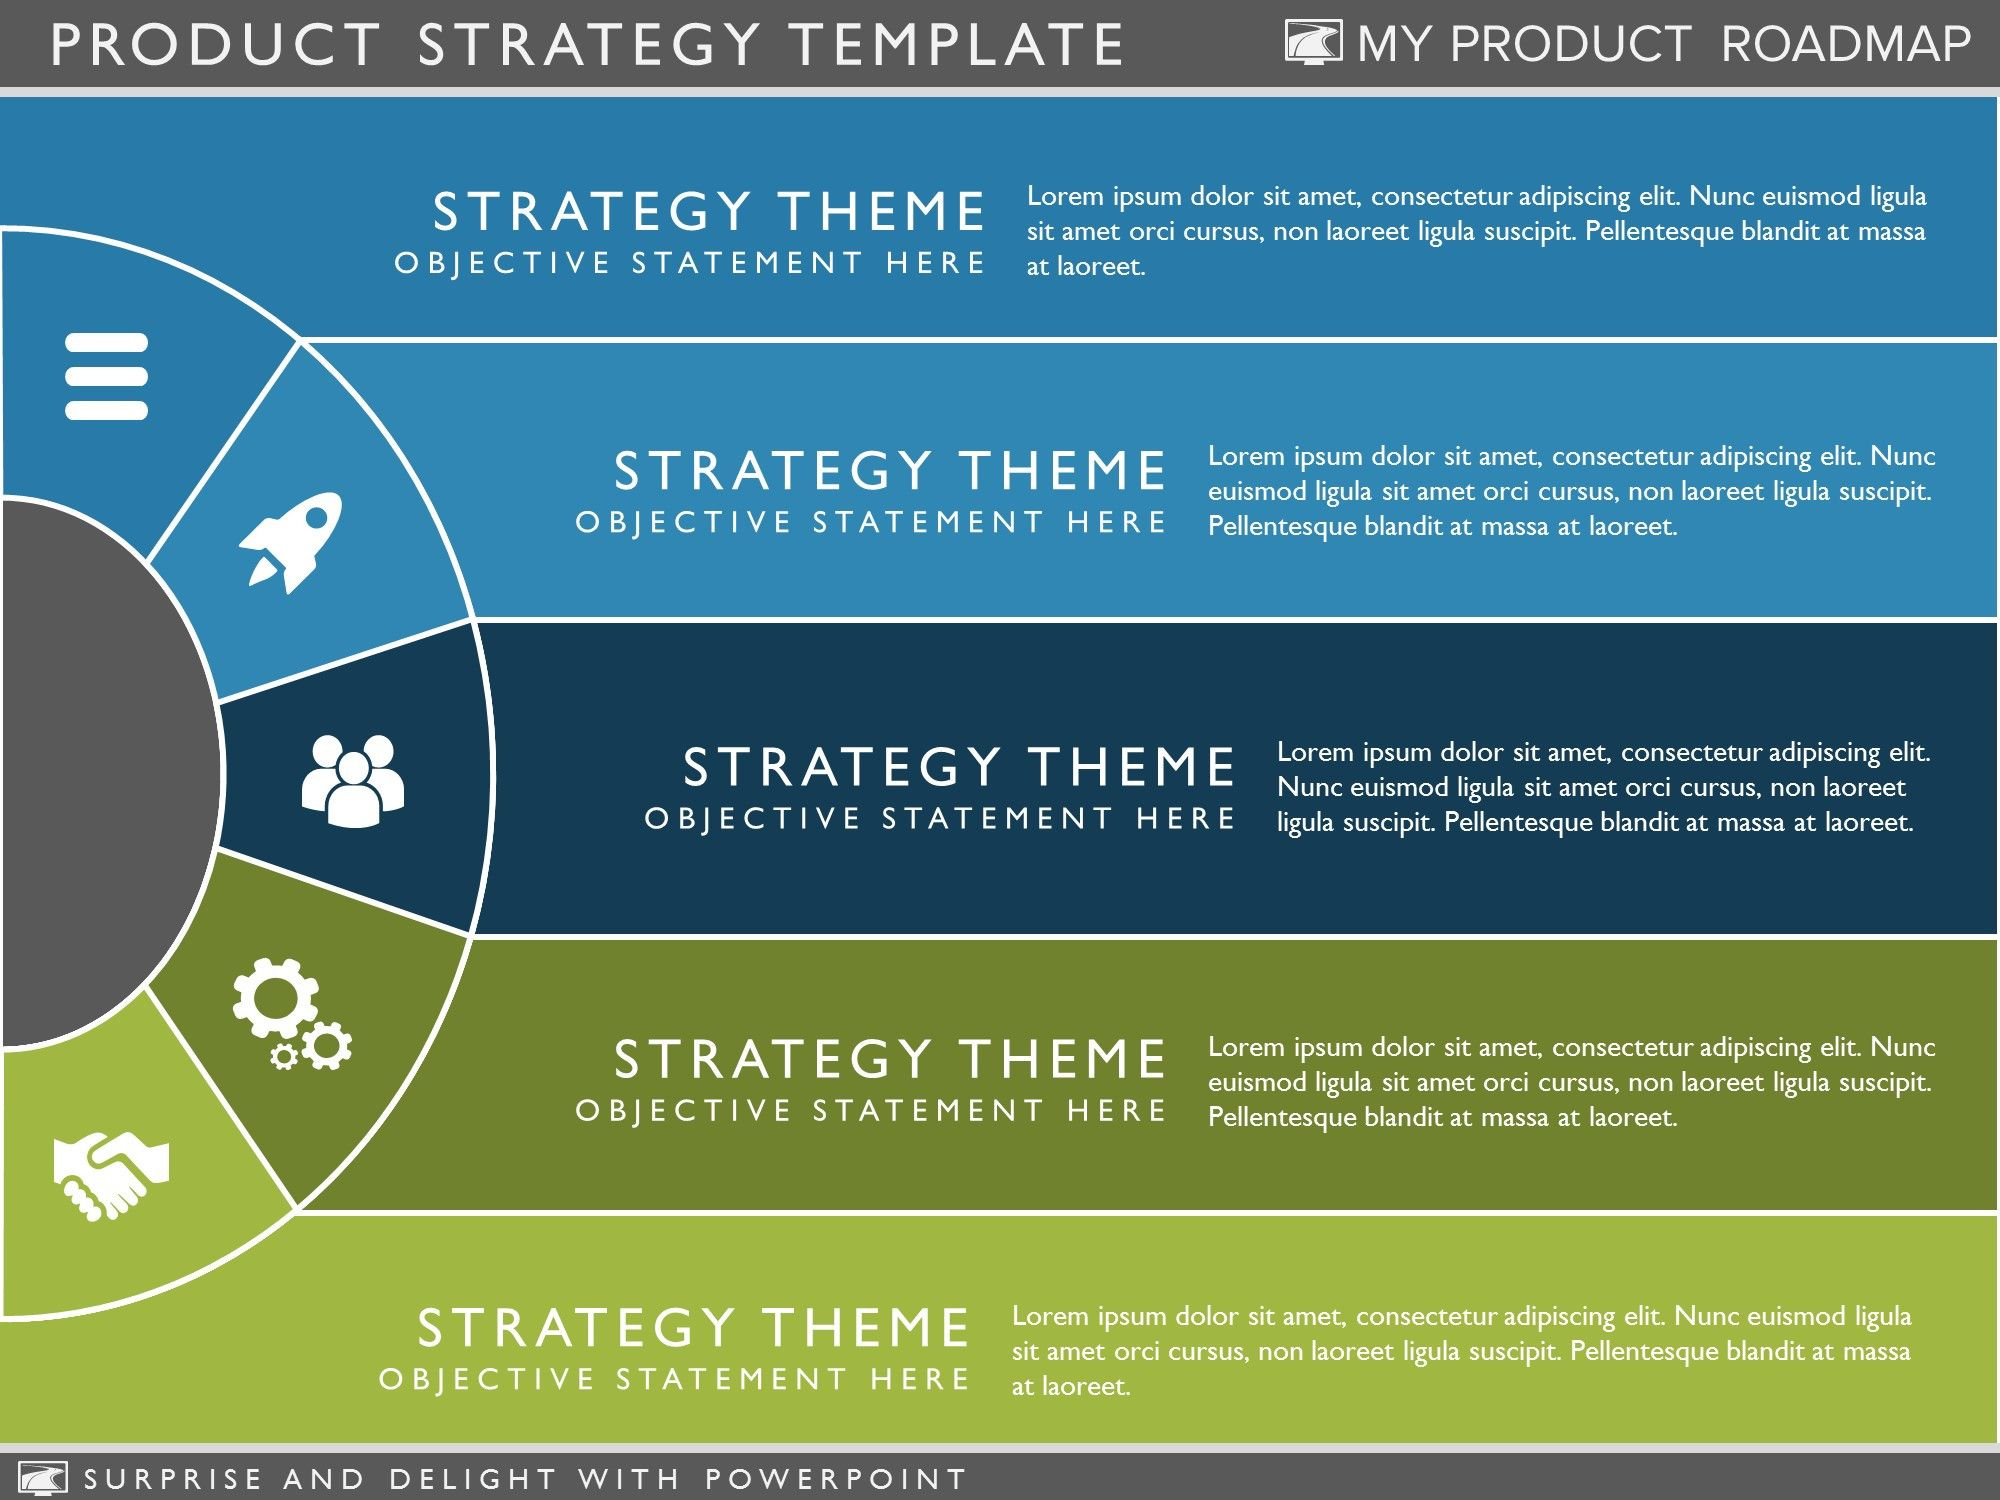 Product Strategy Template | clickfunnel hacks | Pinterest | Template ...